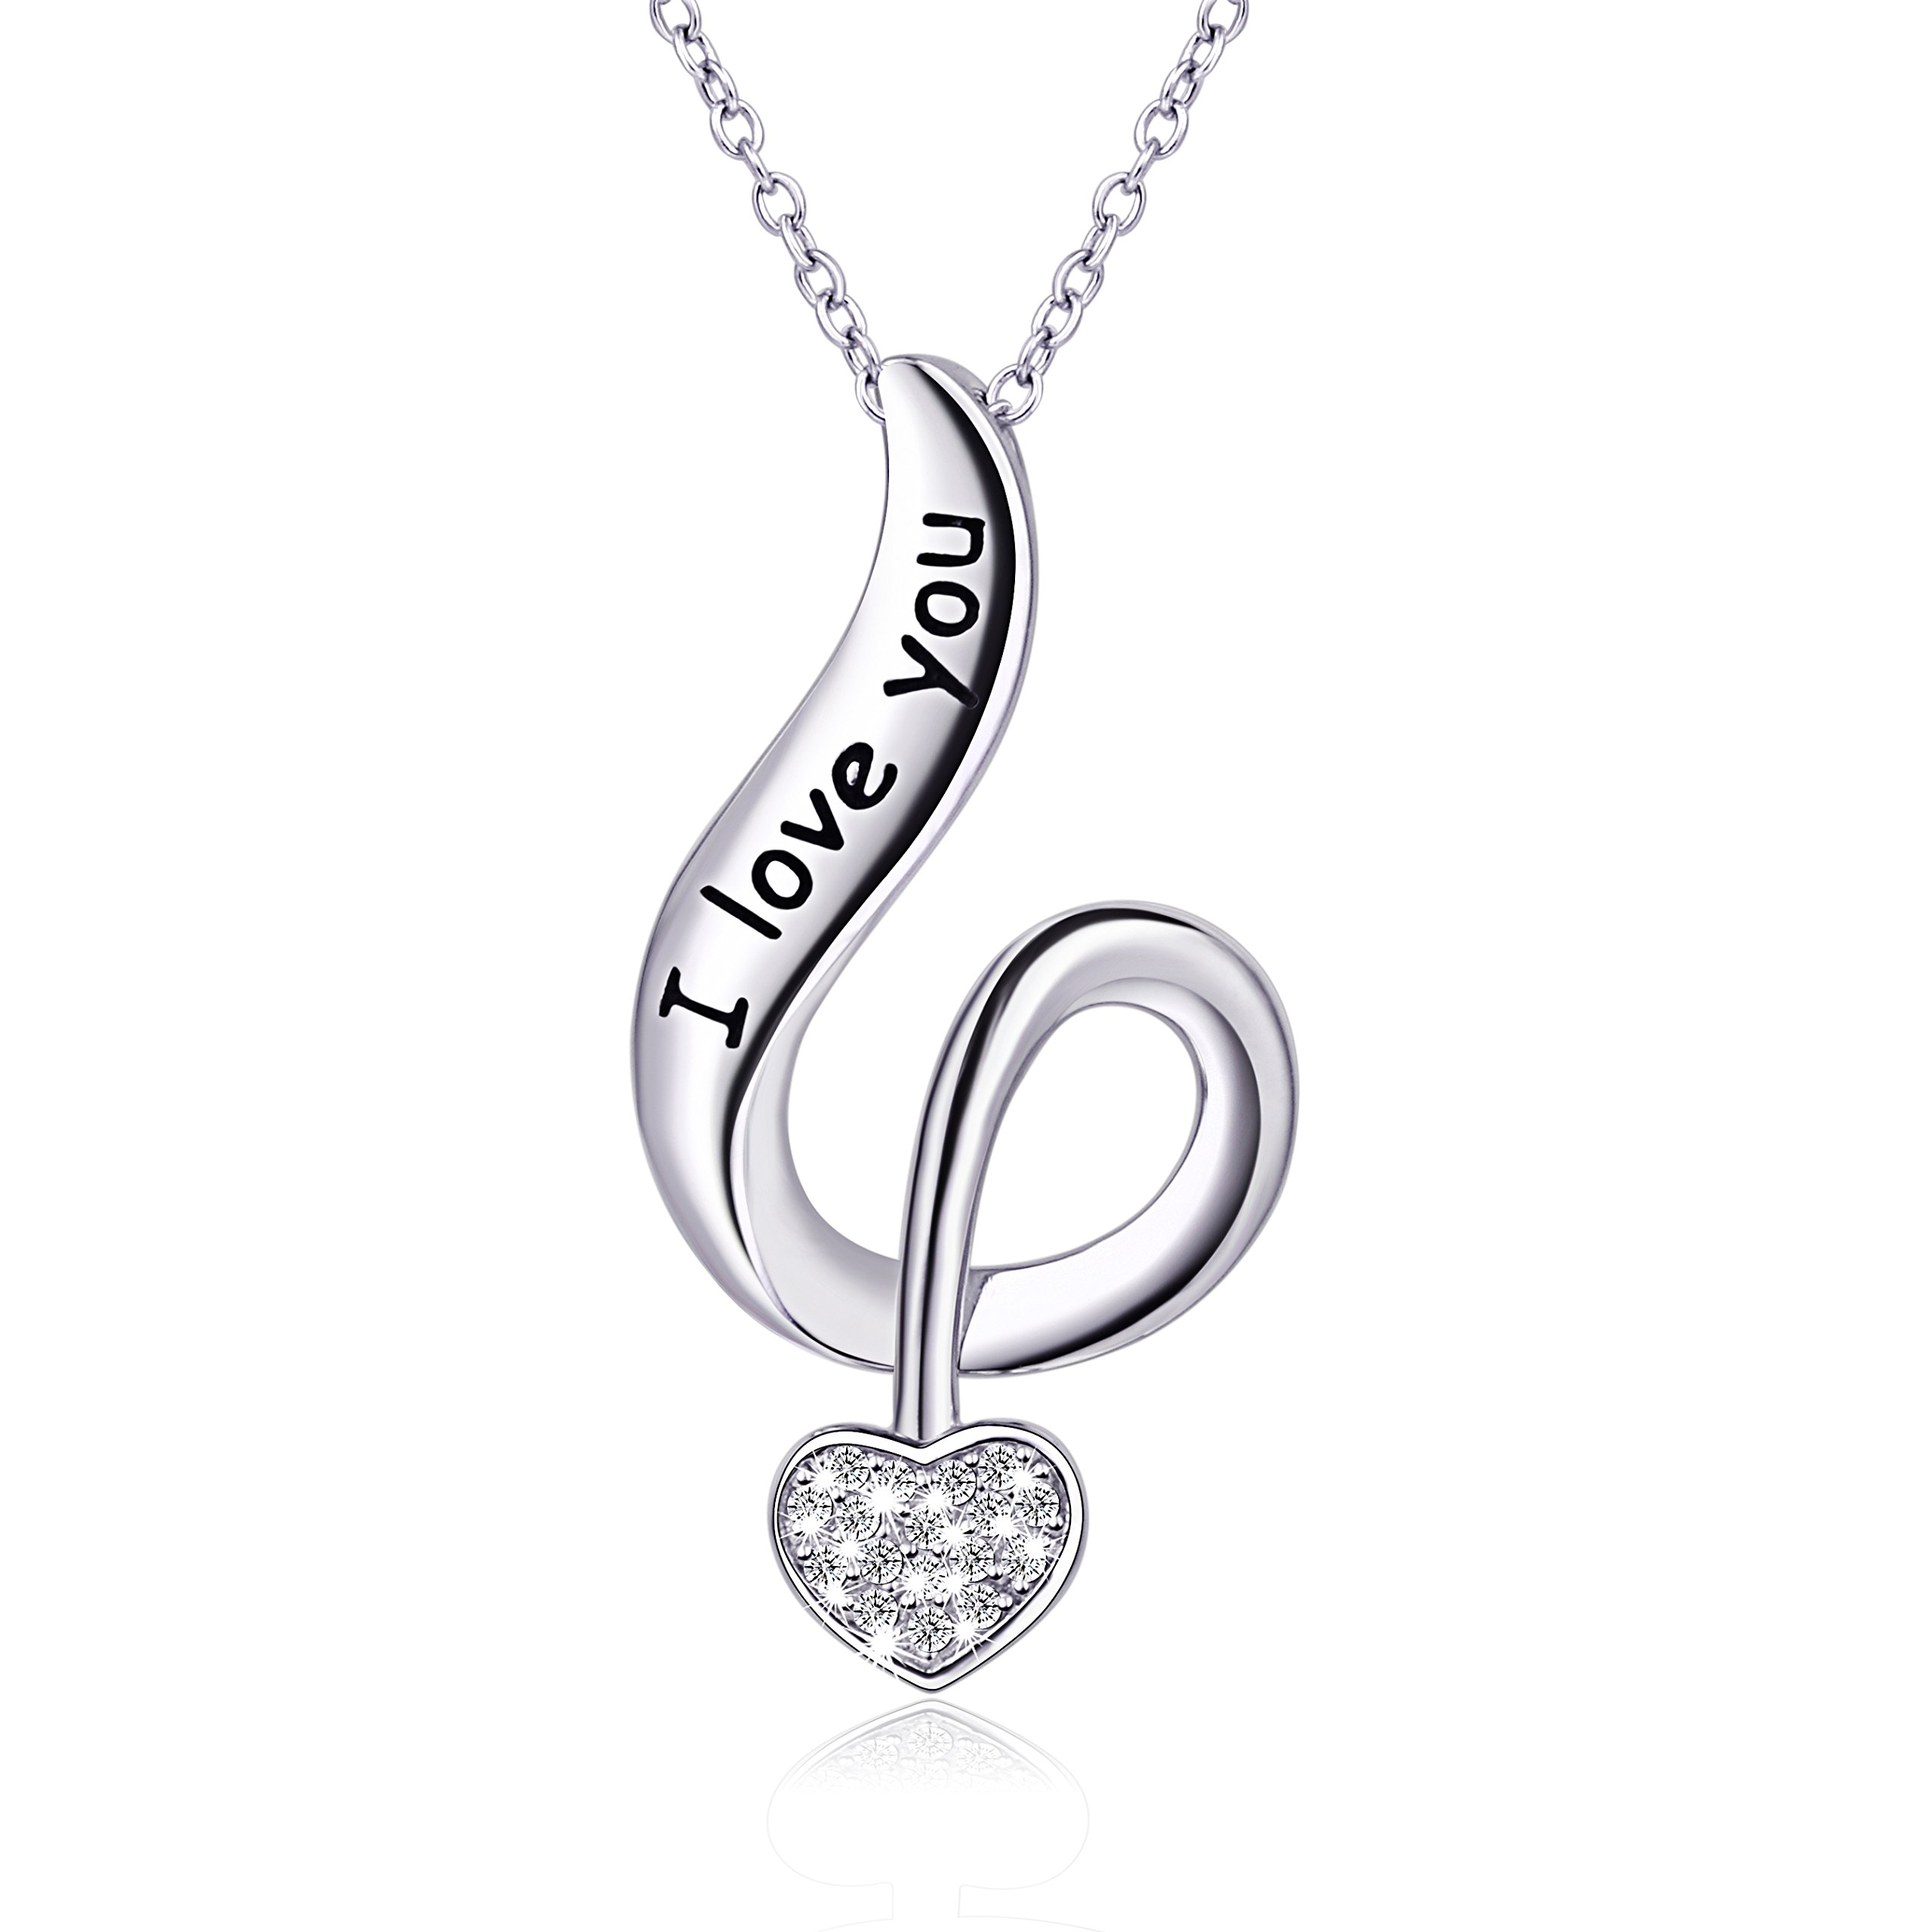 925 Sterling Silver Falling into Your Heart ''I Love You'' Pendant Necklace, Rolo Chain